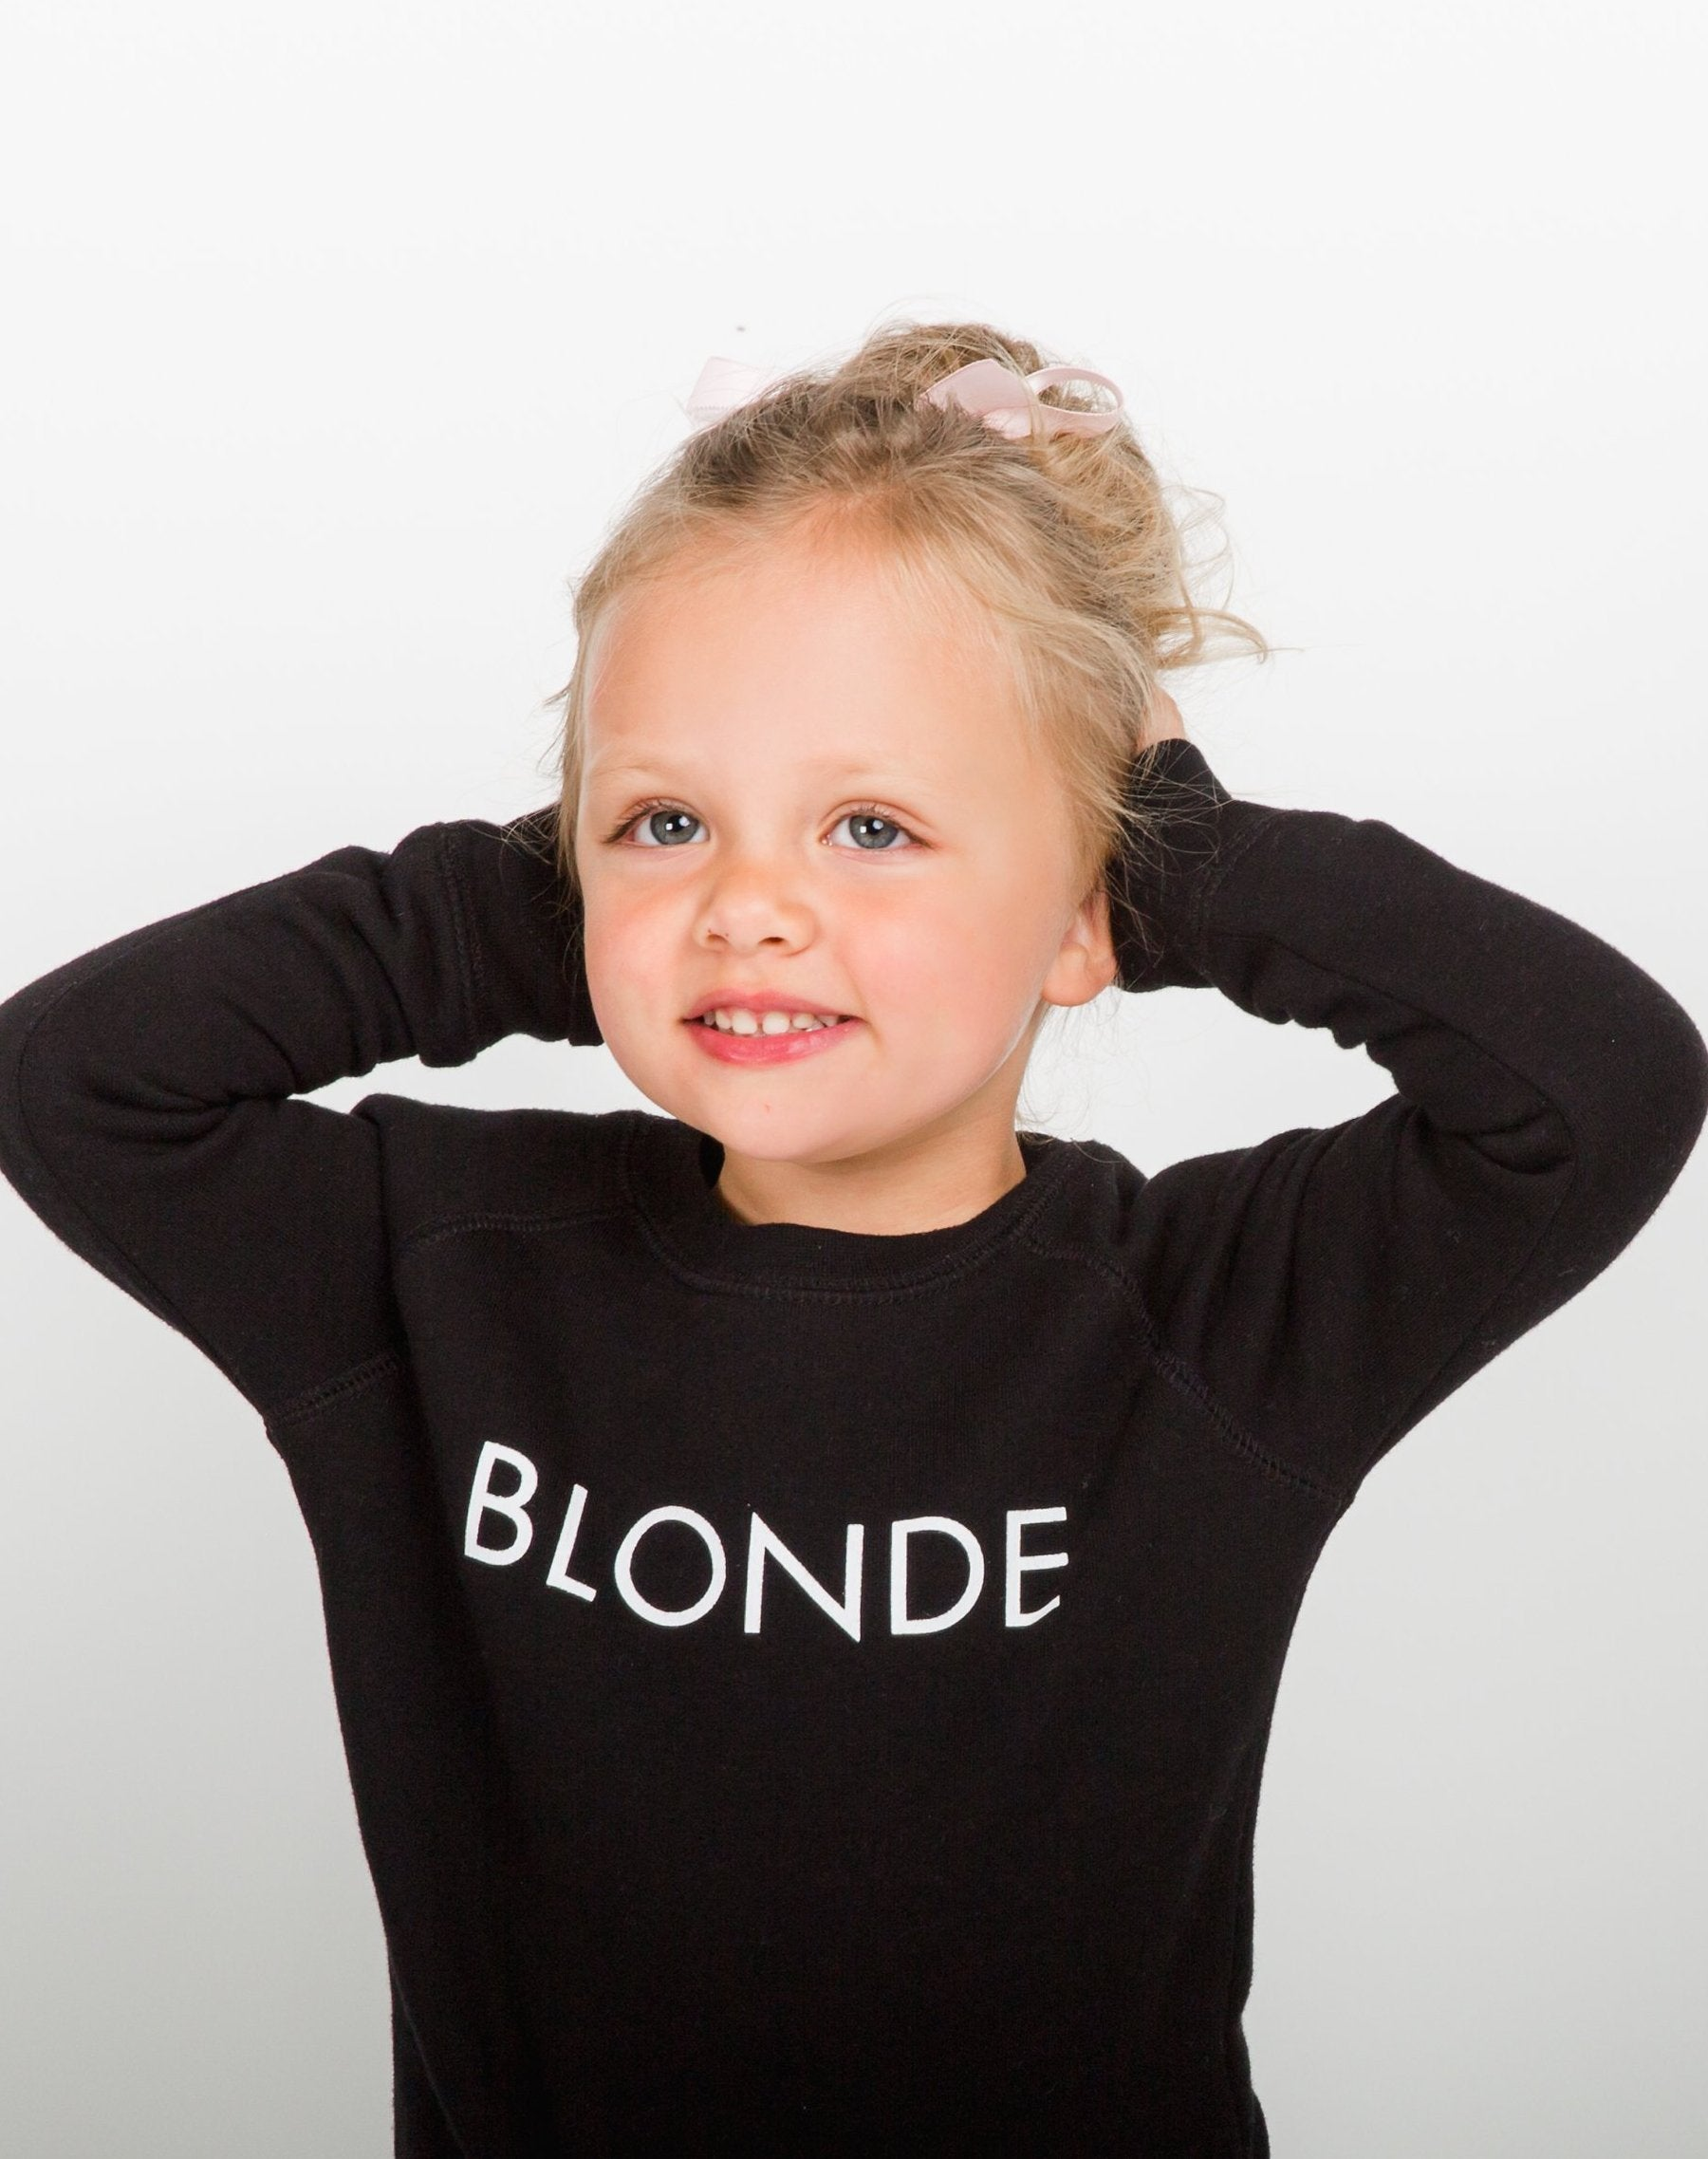 Photo 3 of the Blonde Little Babes classic crew neck sweatshirt in black by Brunette the Label.